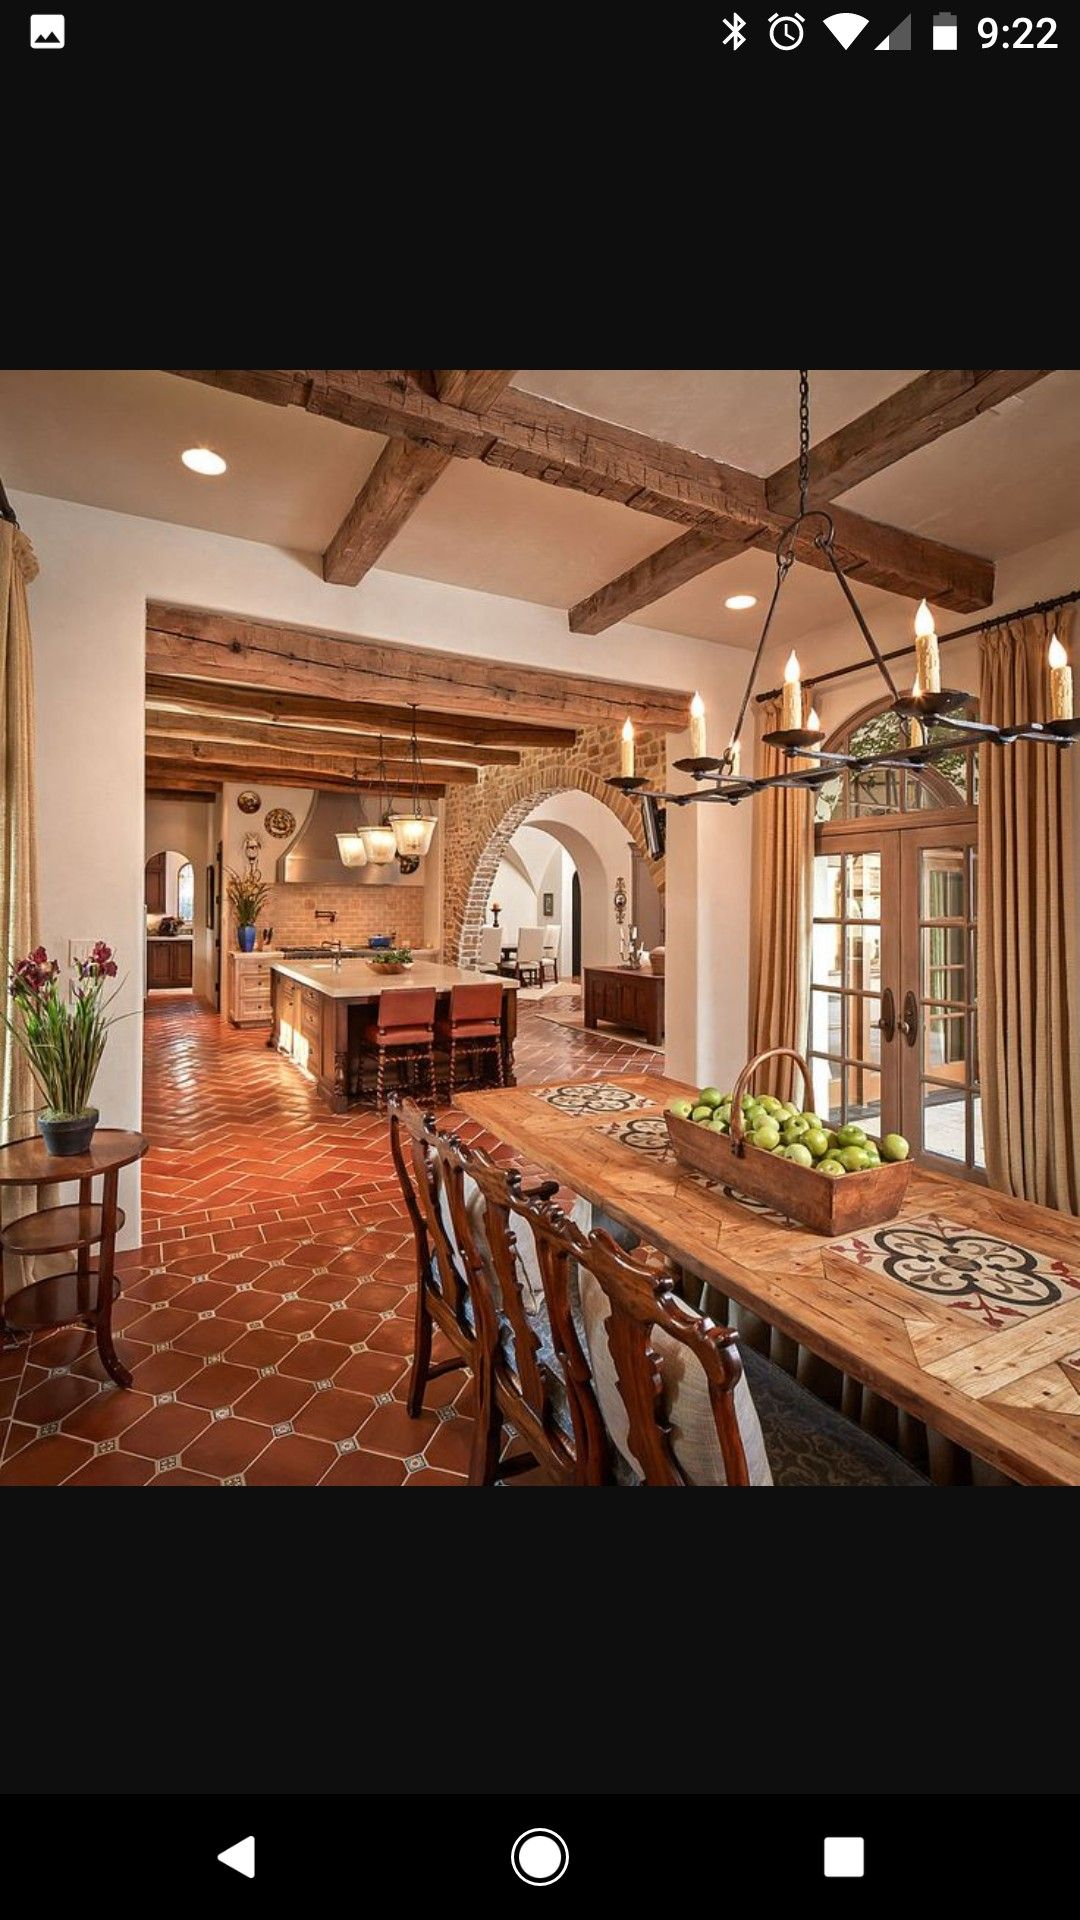 12 Inspirations For Home Improvement With Spanish Home Decorating Ideas: Spanish Style Homes, Mediterranean Home Decor